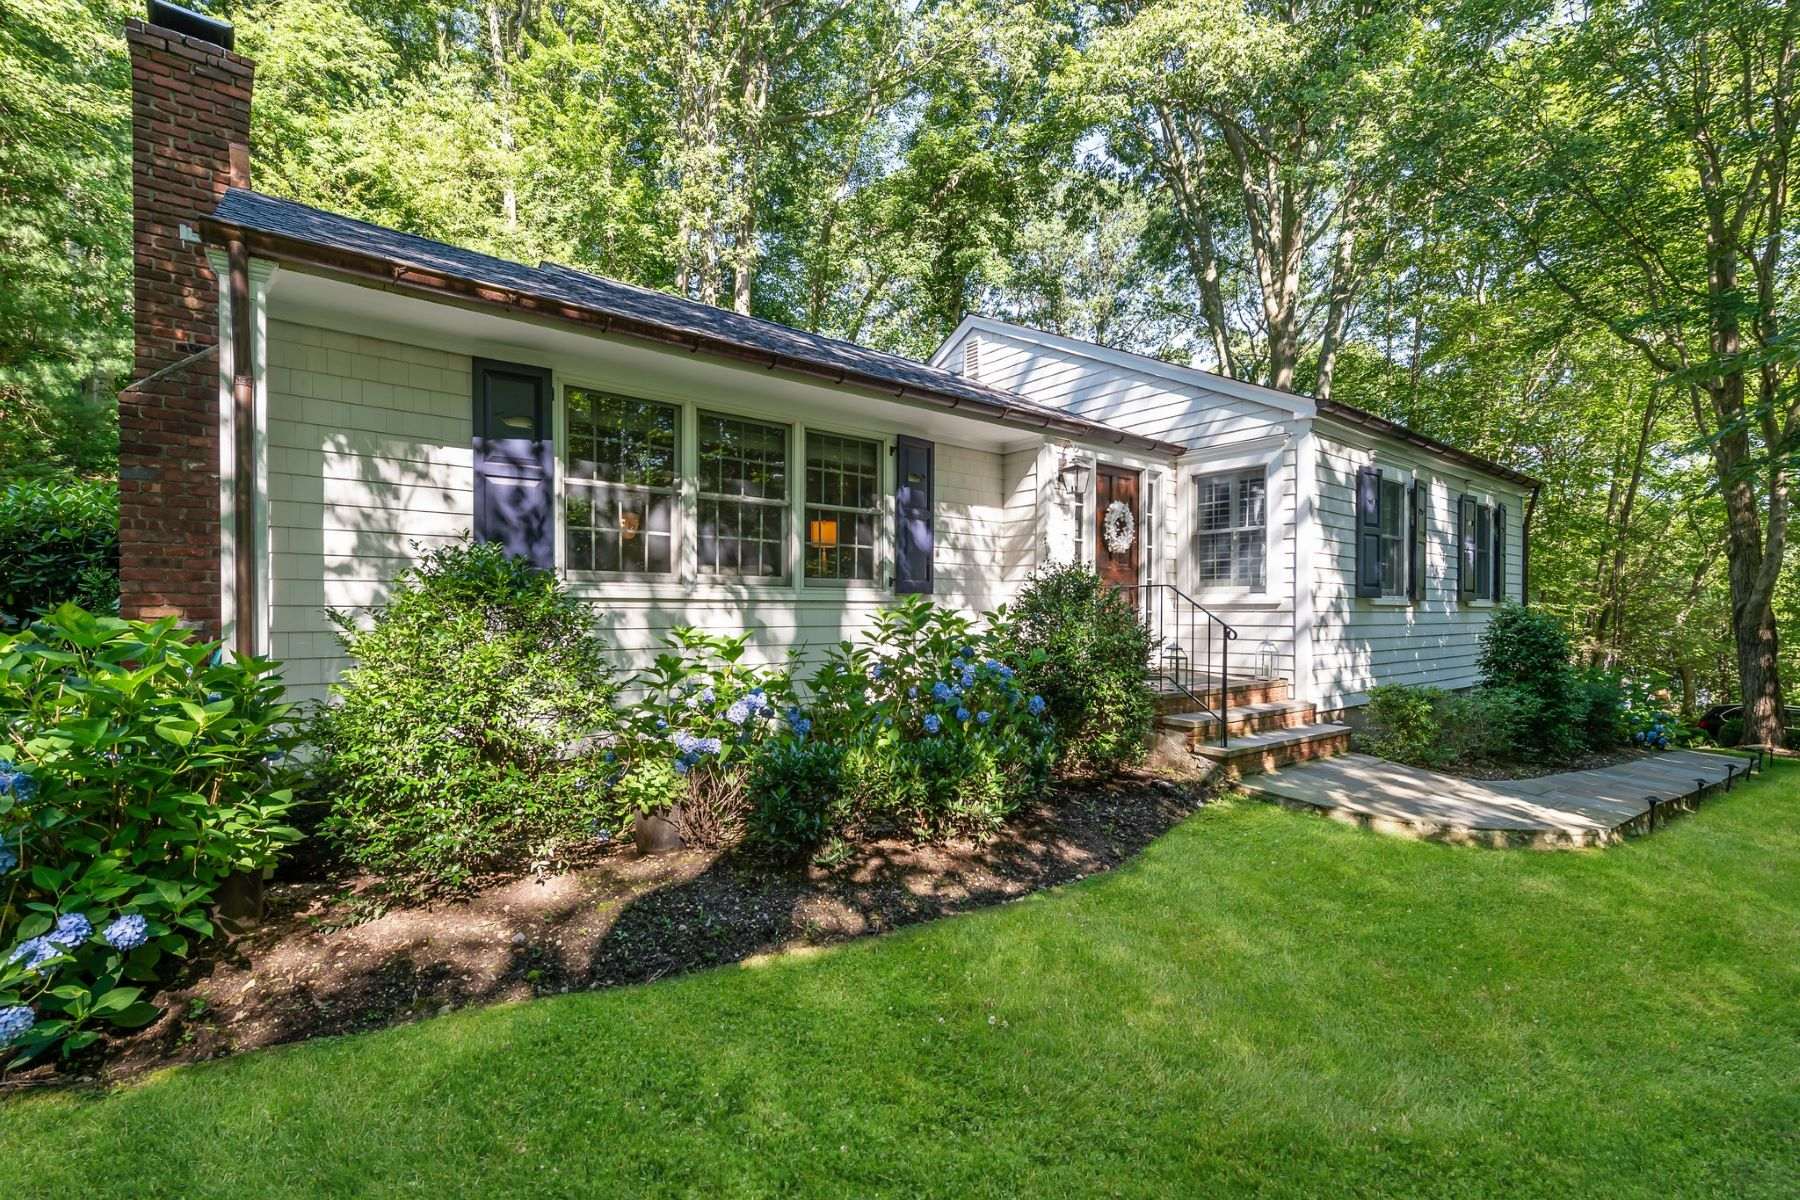 Single Family Homes for Sale at Cold Spring Hrbr 44 Turkey Ln Cold Spring Harbor, New York 11724 United States